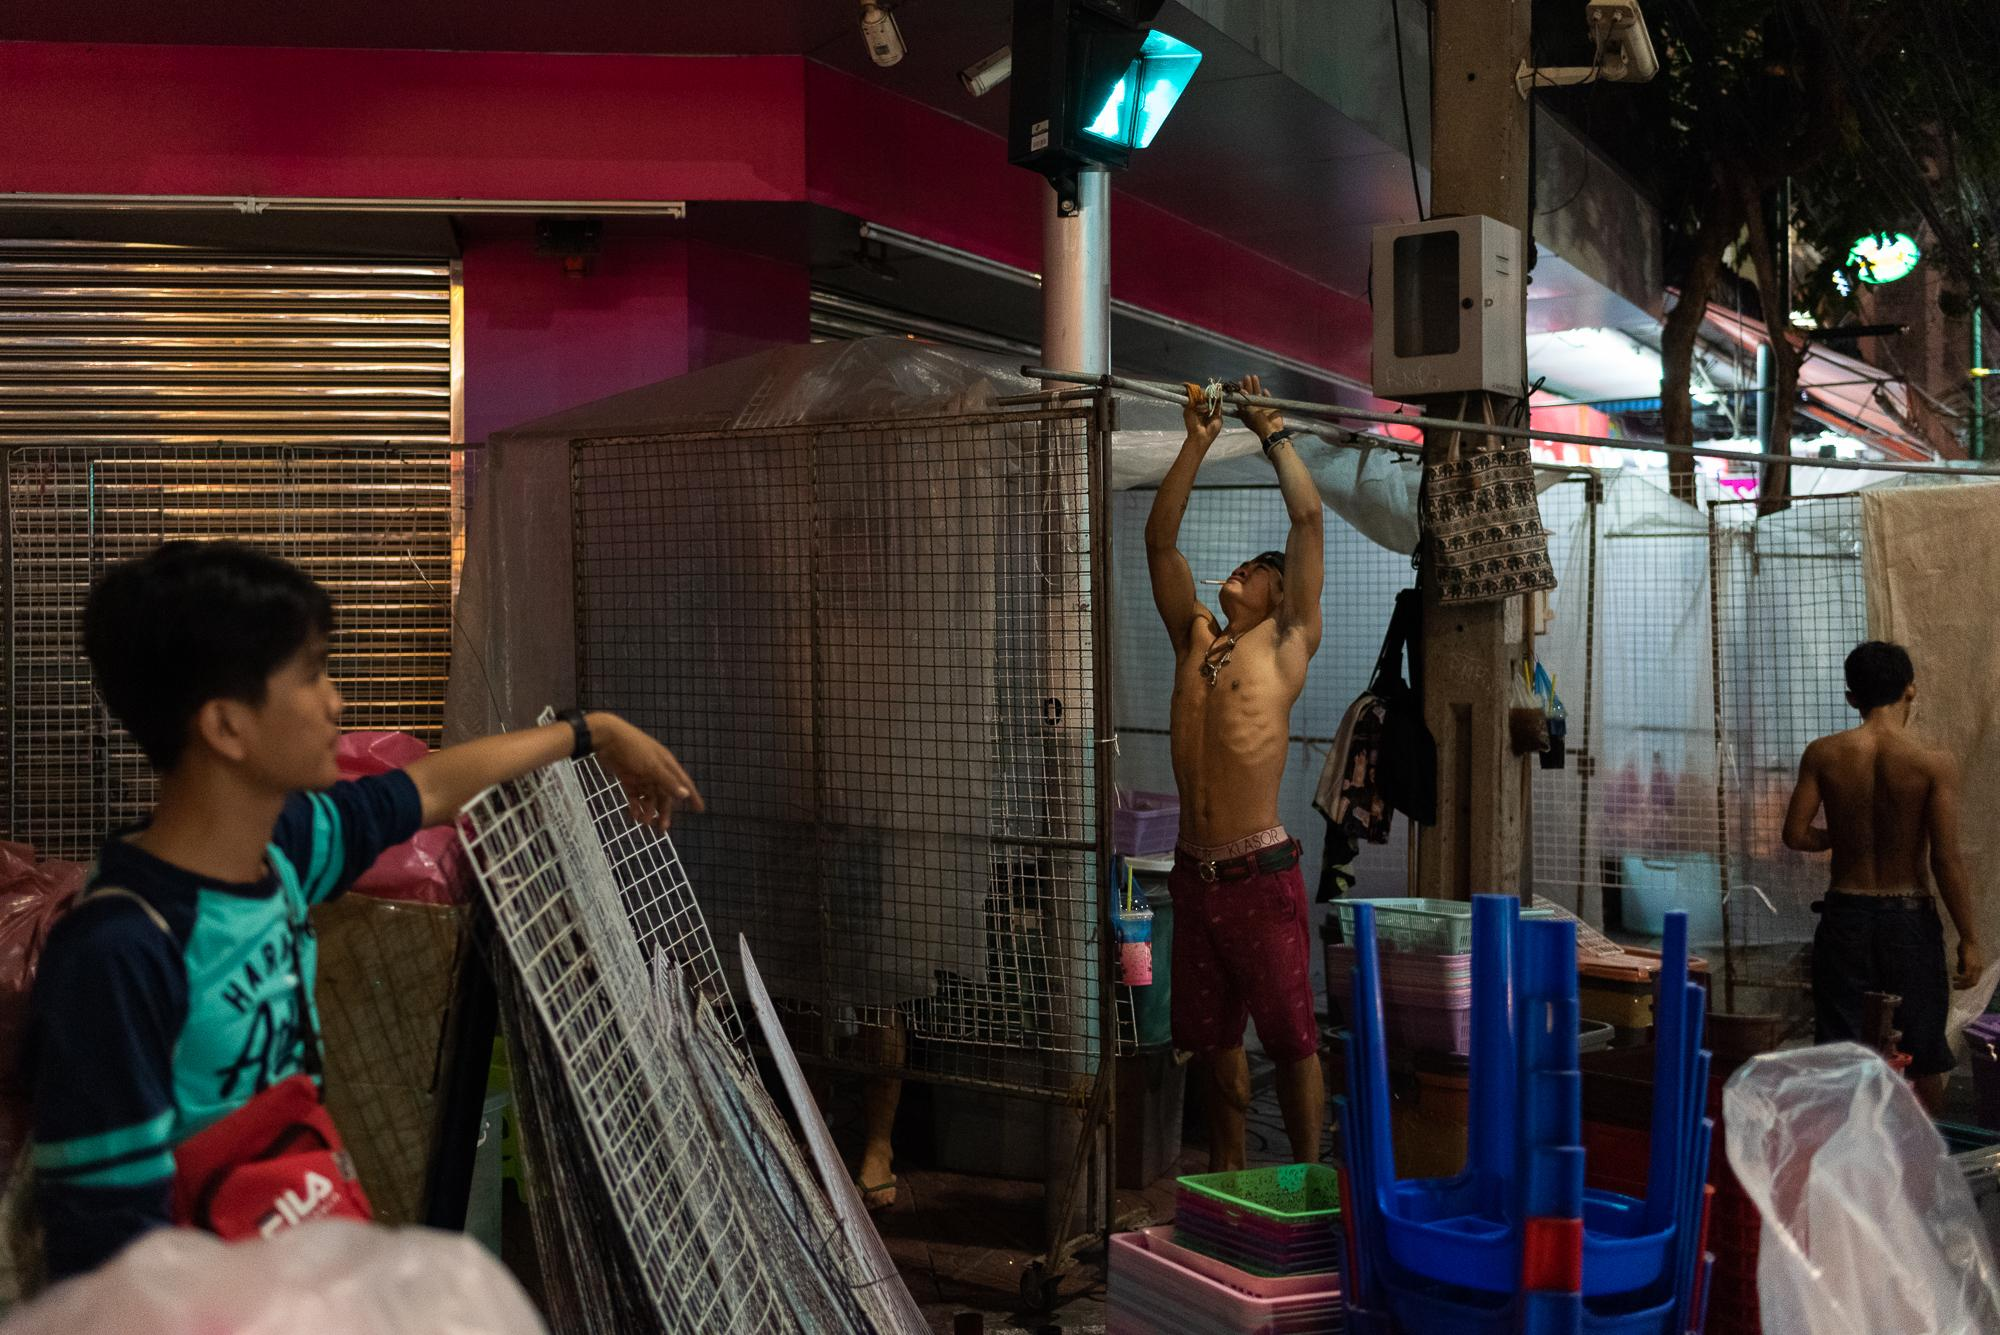 BANGKOK, THAILAND – DECEMBER 11, 2018: Burmese workers at Sampheng Market. Due to limited education background and language barriers, they are hired for low-skilled labor jobs and receive minimum daily wages (10.50 USD/day), which are higher than what they earn in their home country (3.50 USD/day).